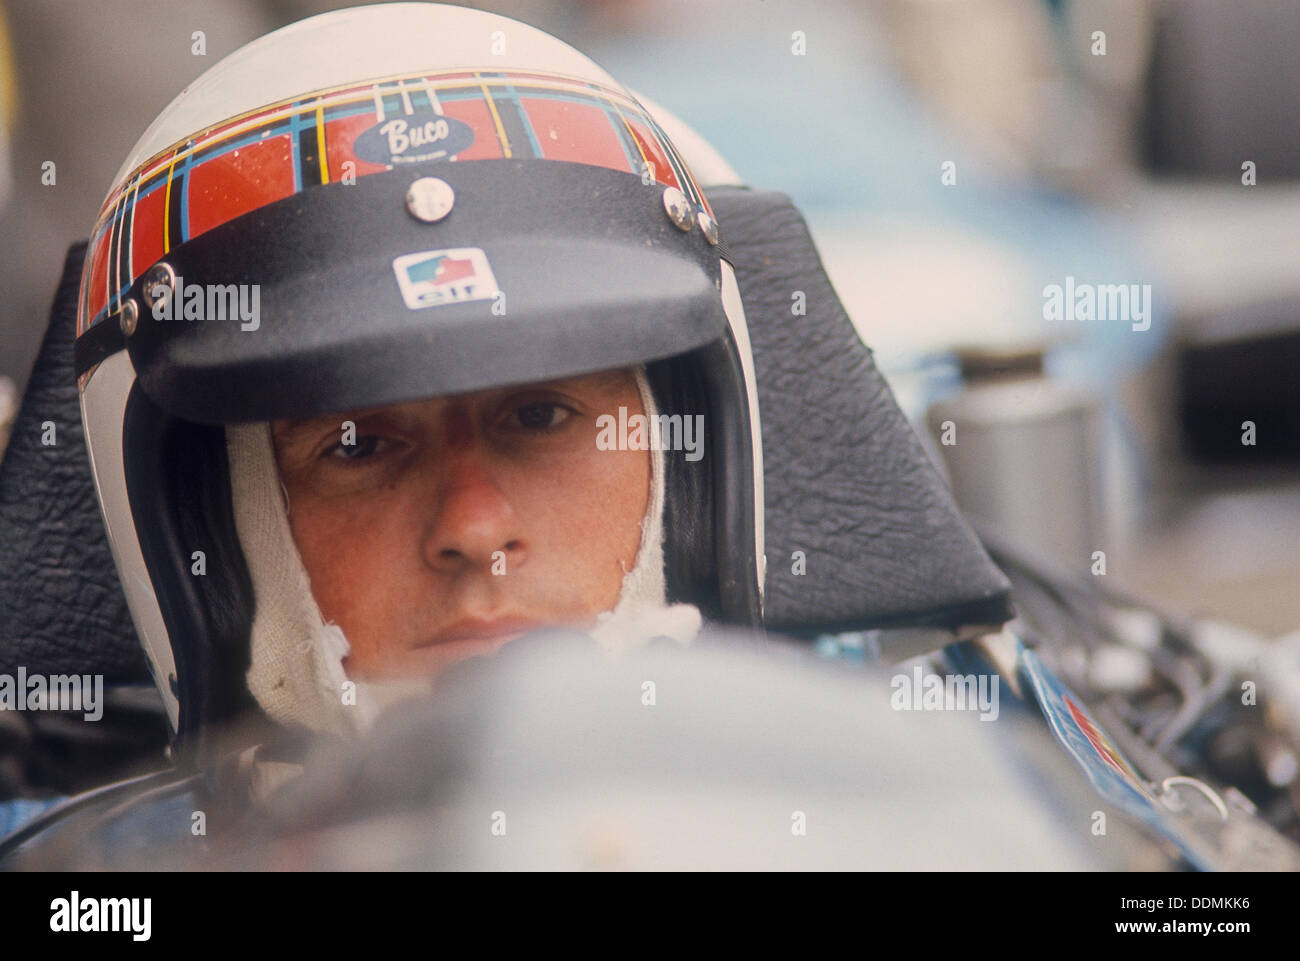 Jackie Stewart at the wheel of a racing car. - Stock Image